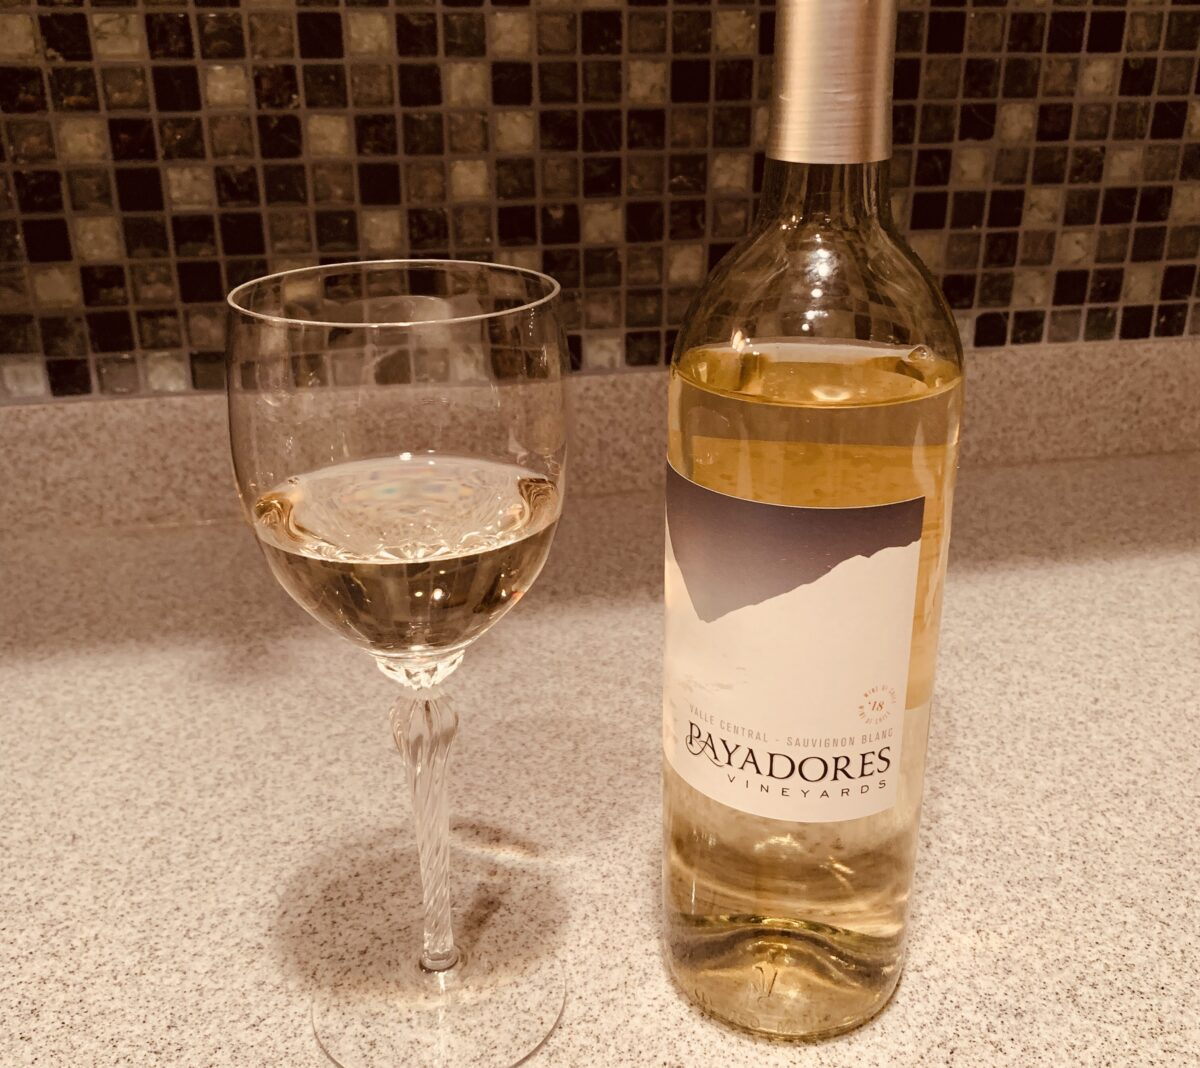 Wine Review – Payadores